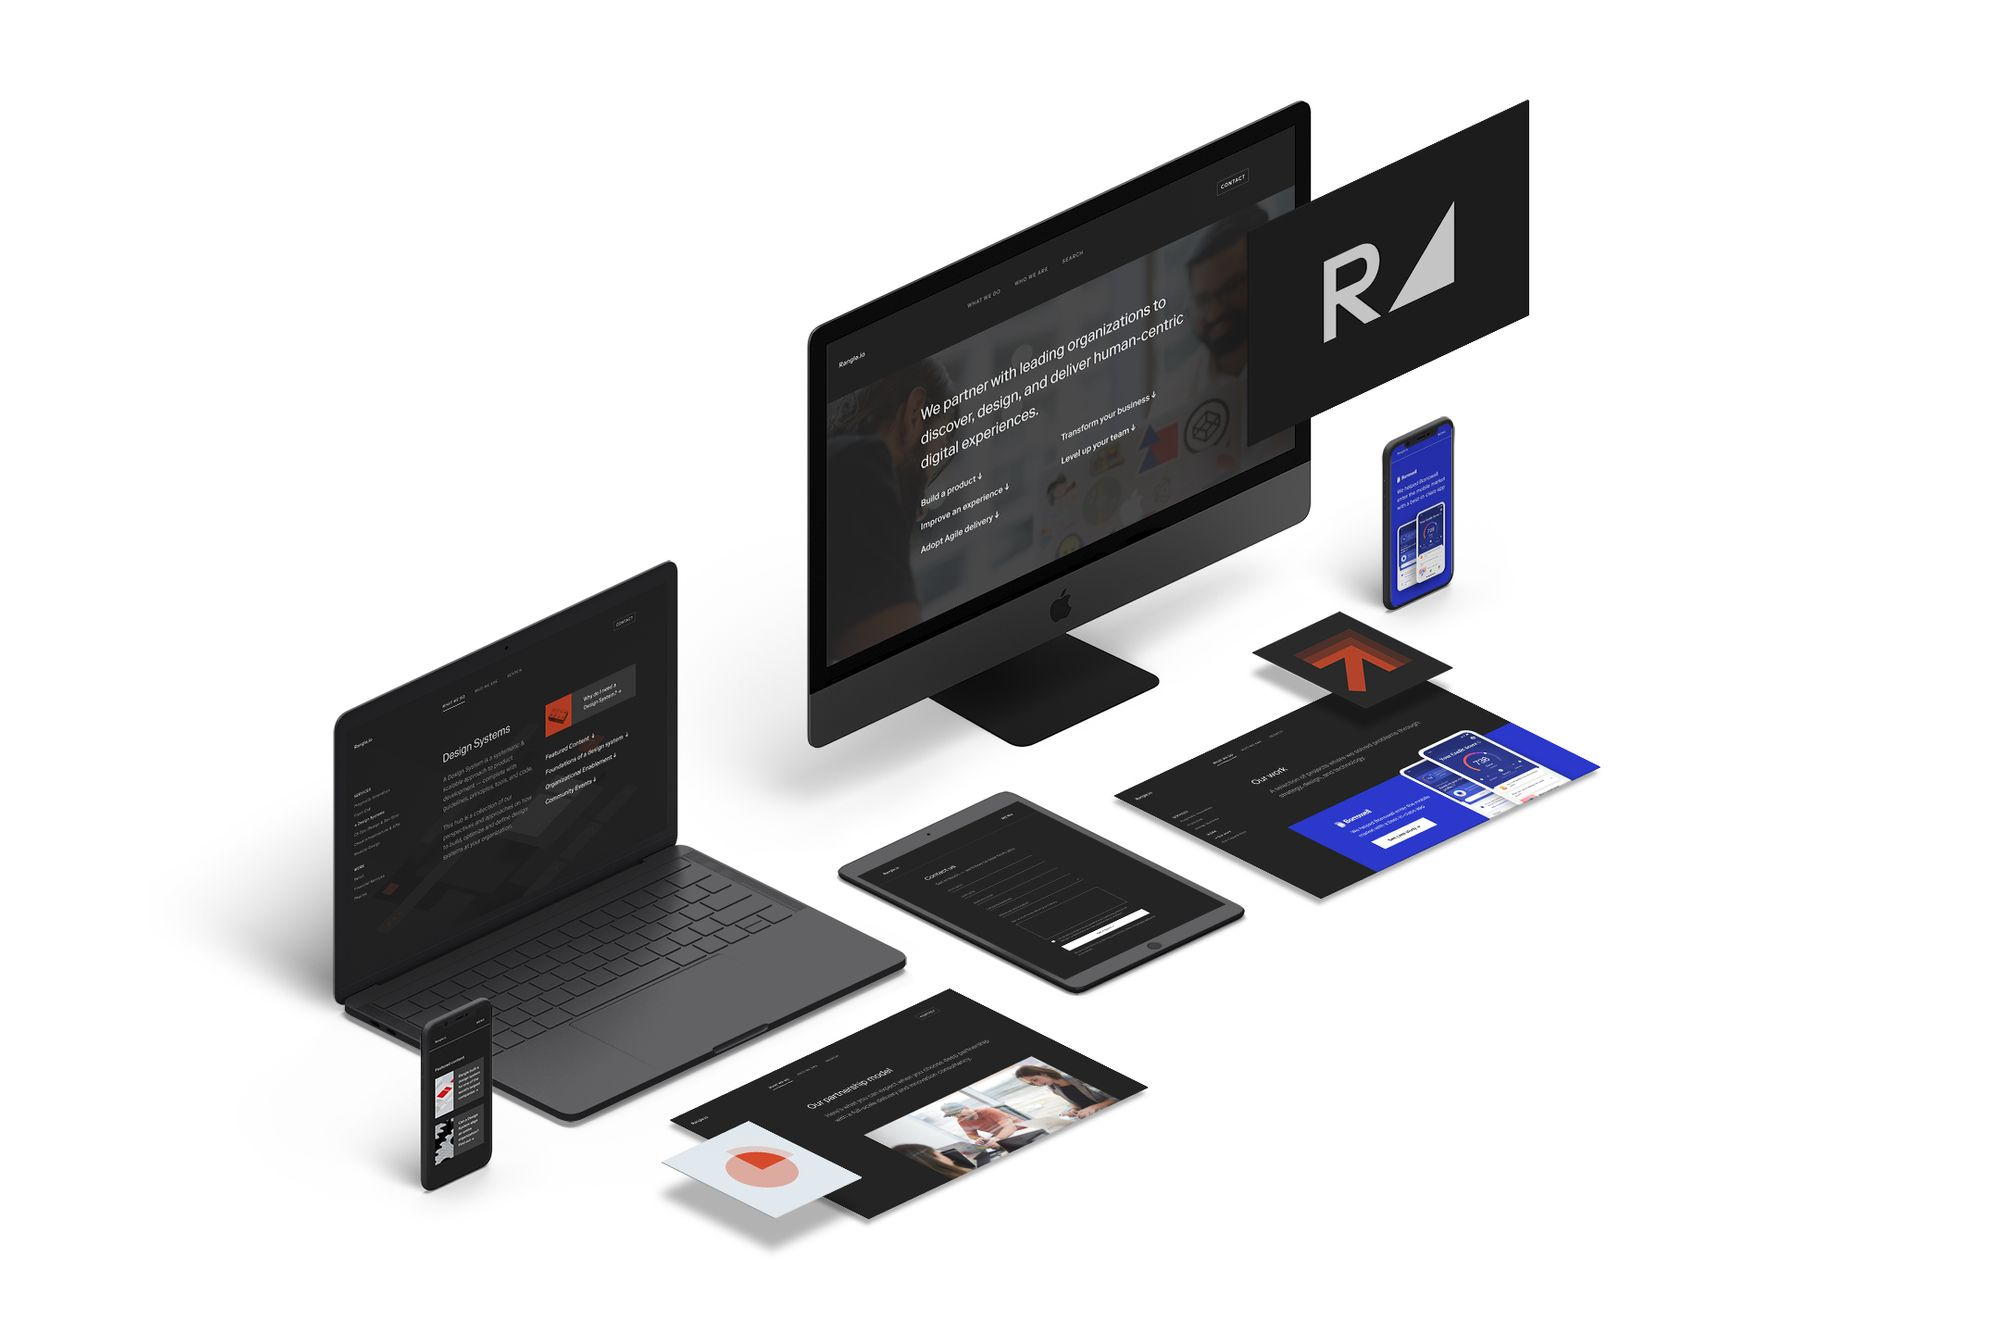 screens of various devices showing Rangle webpages built using Figma